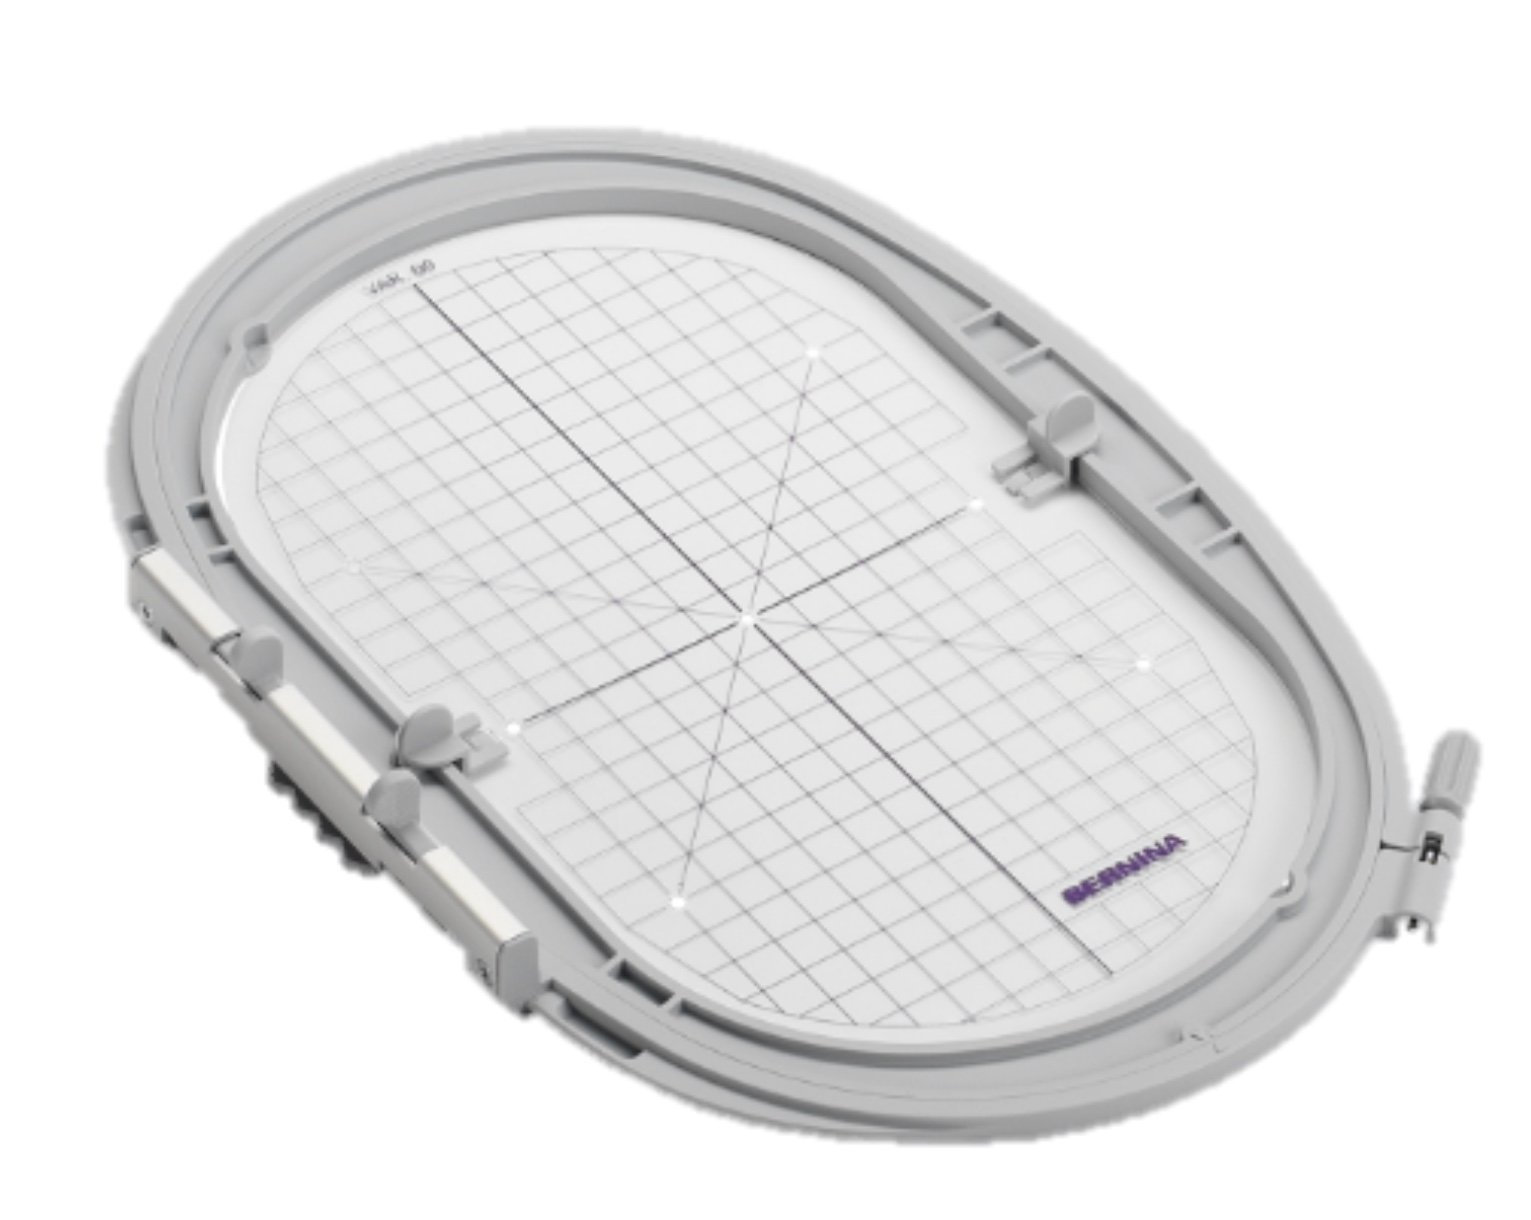 "Bernina Embroidery Hoop Large Oval 5.8"" x 10.2"" (14.5 x25.5cm)  Embroidery Modules 5 & 7/8 Series"